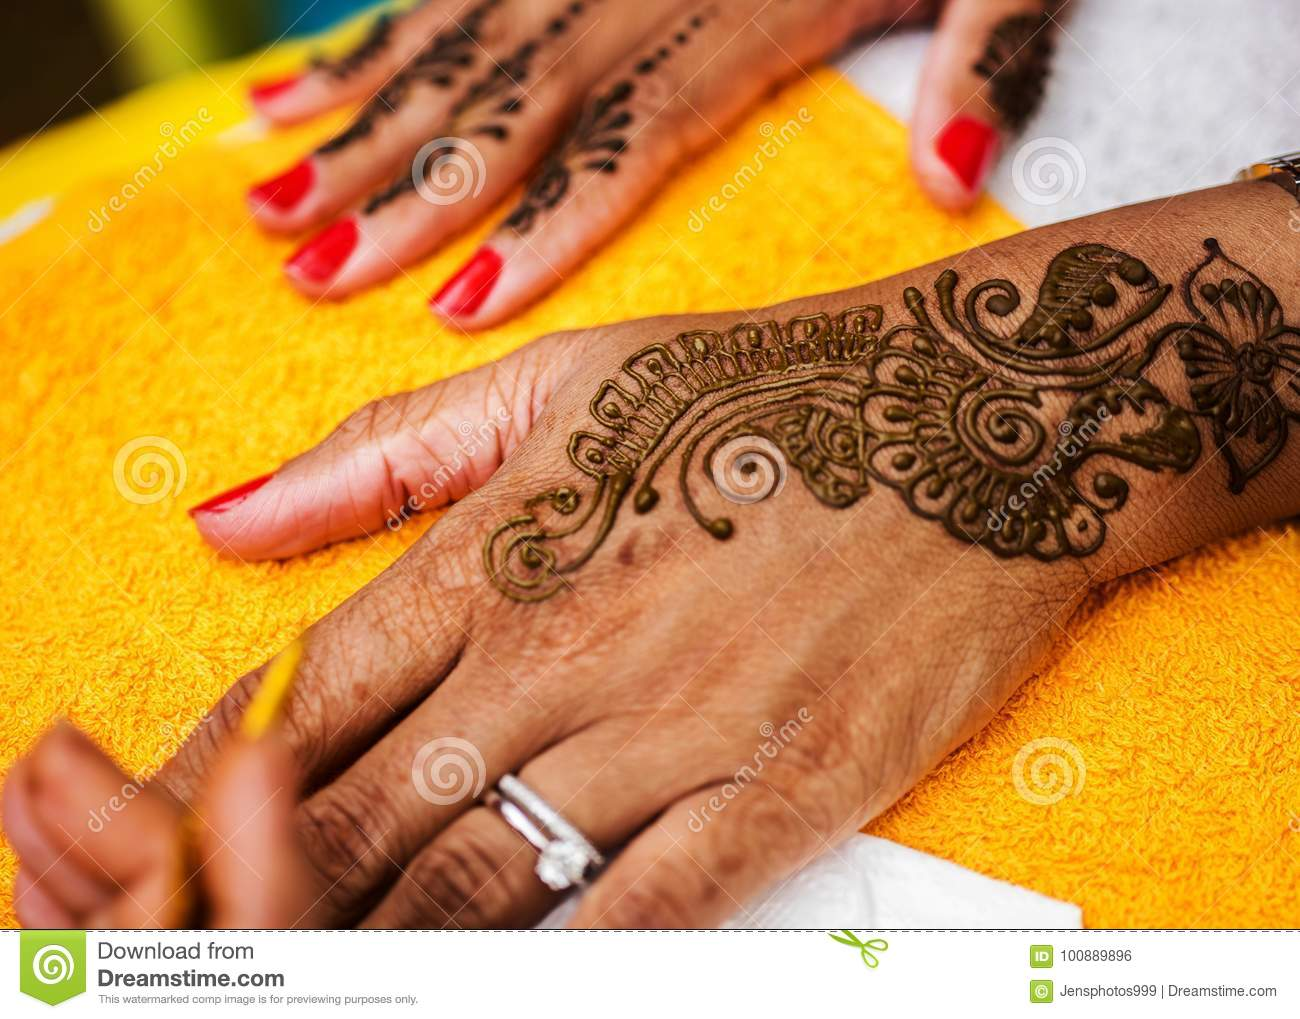 Indian Wedding Guest Having Mehndi Applied. Traditional